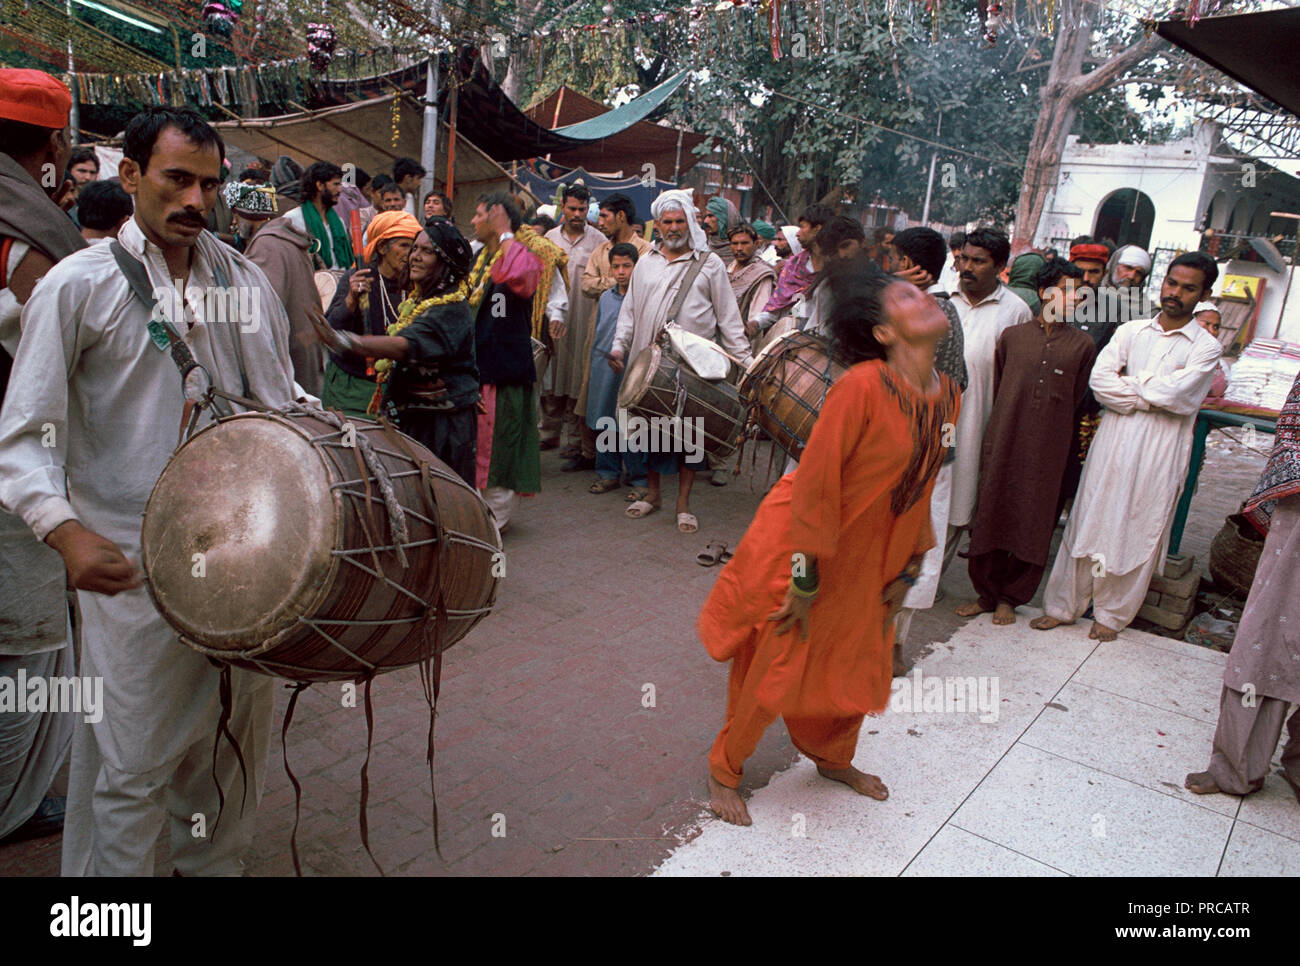 Woman in a trance in a sufi shrine ( Pakistan) - Stock Image